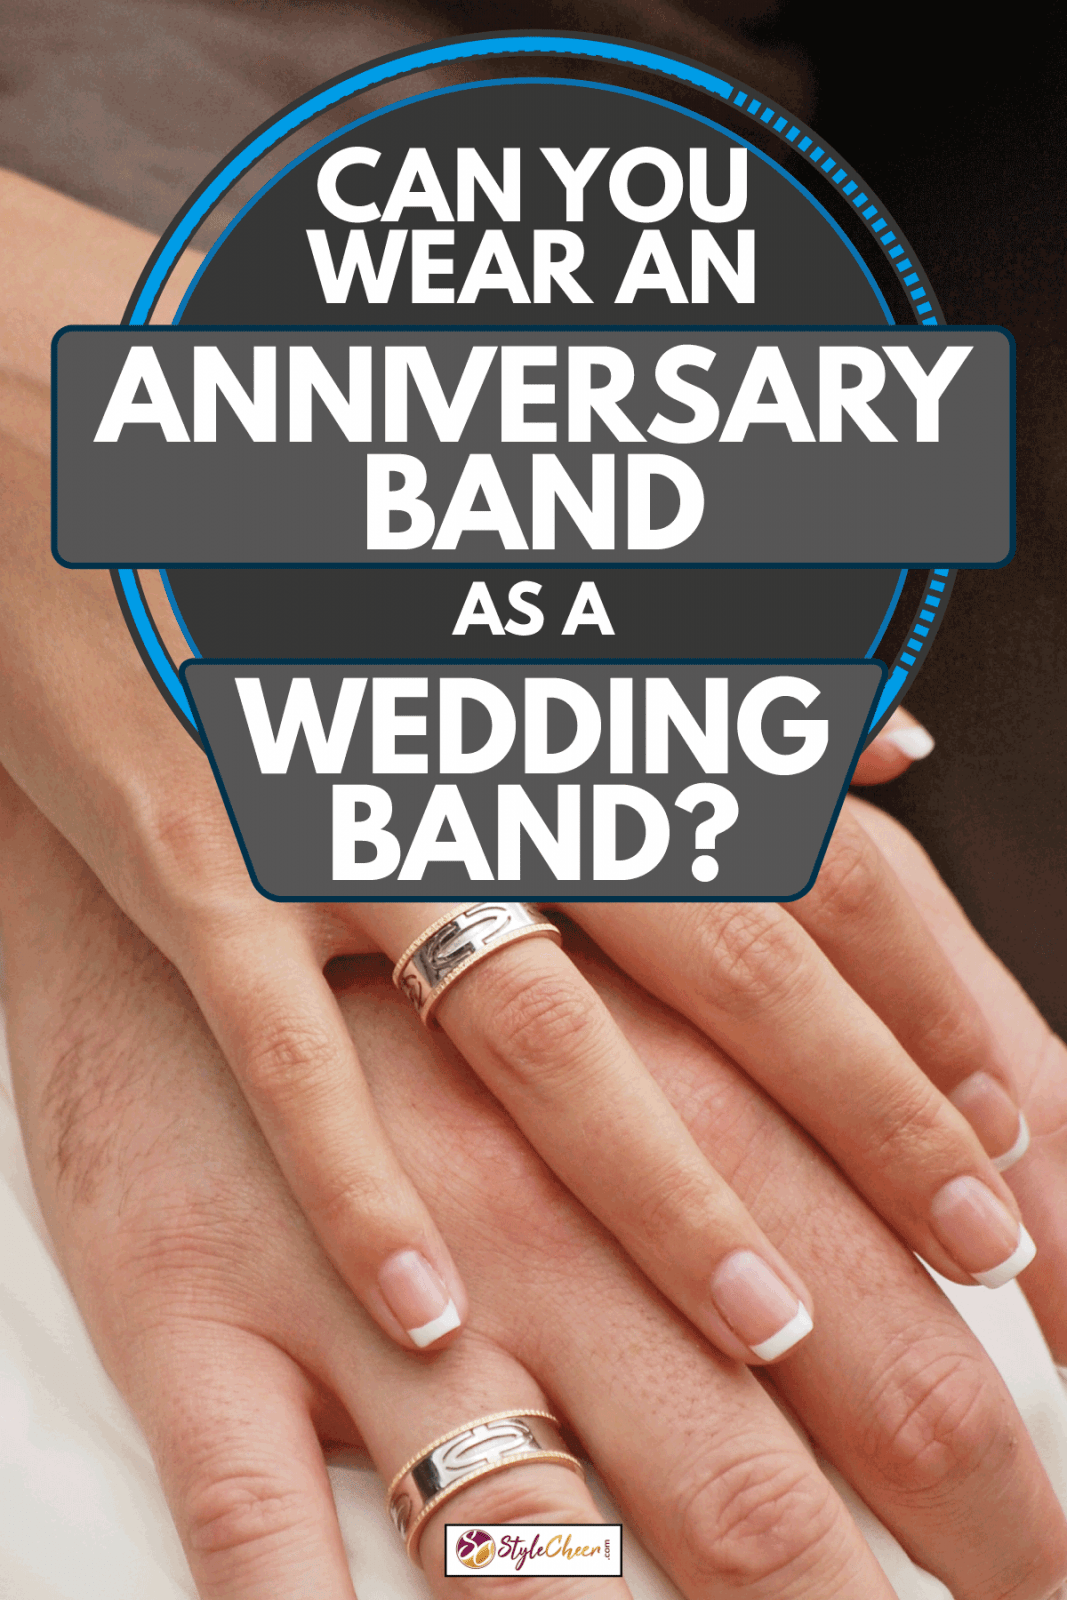 The bride and groom hold hands together with wedding rings, Can You Wear An Anniversary Band As A Wedding Band?